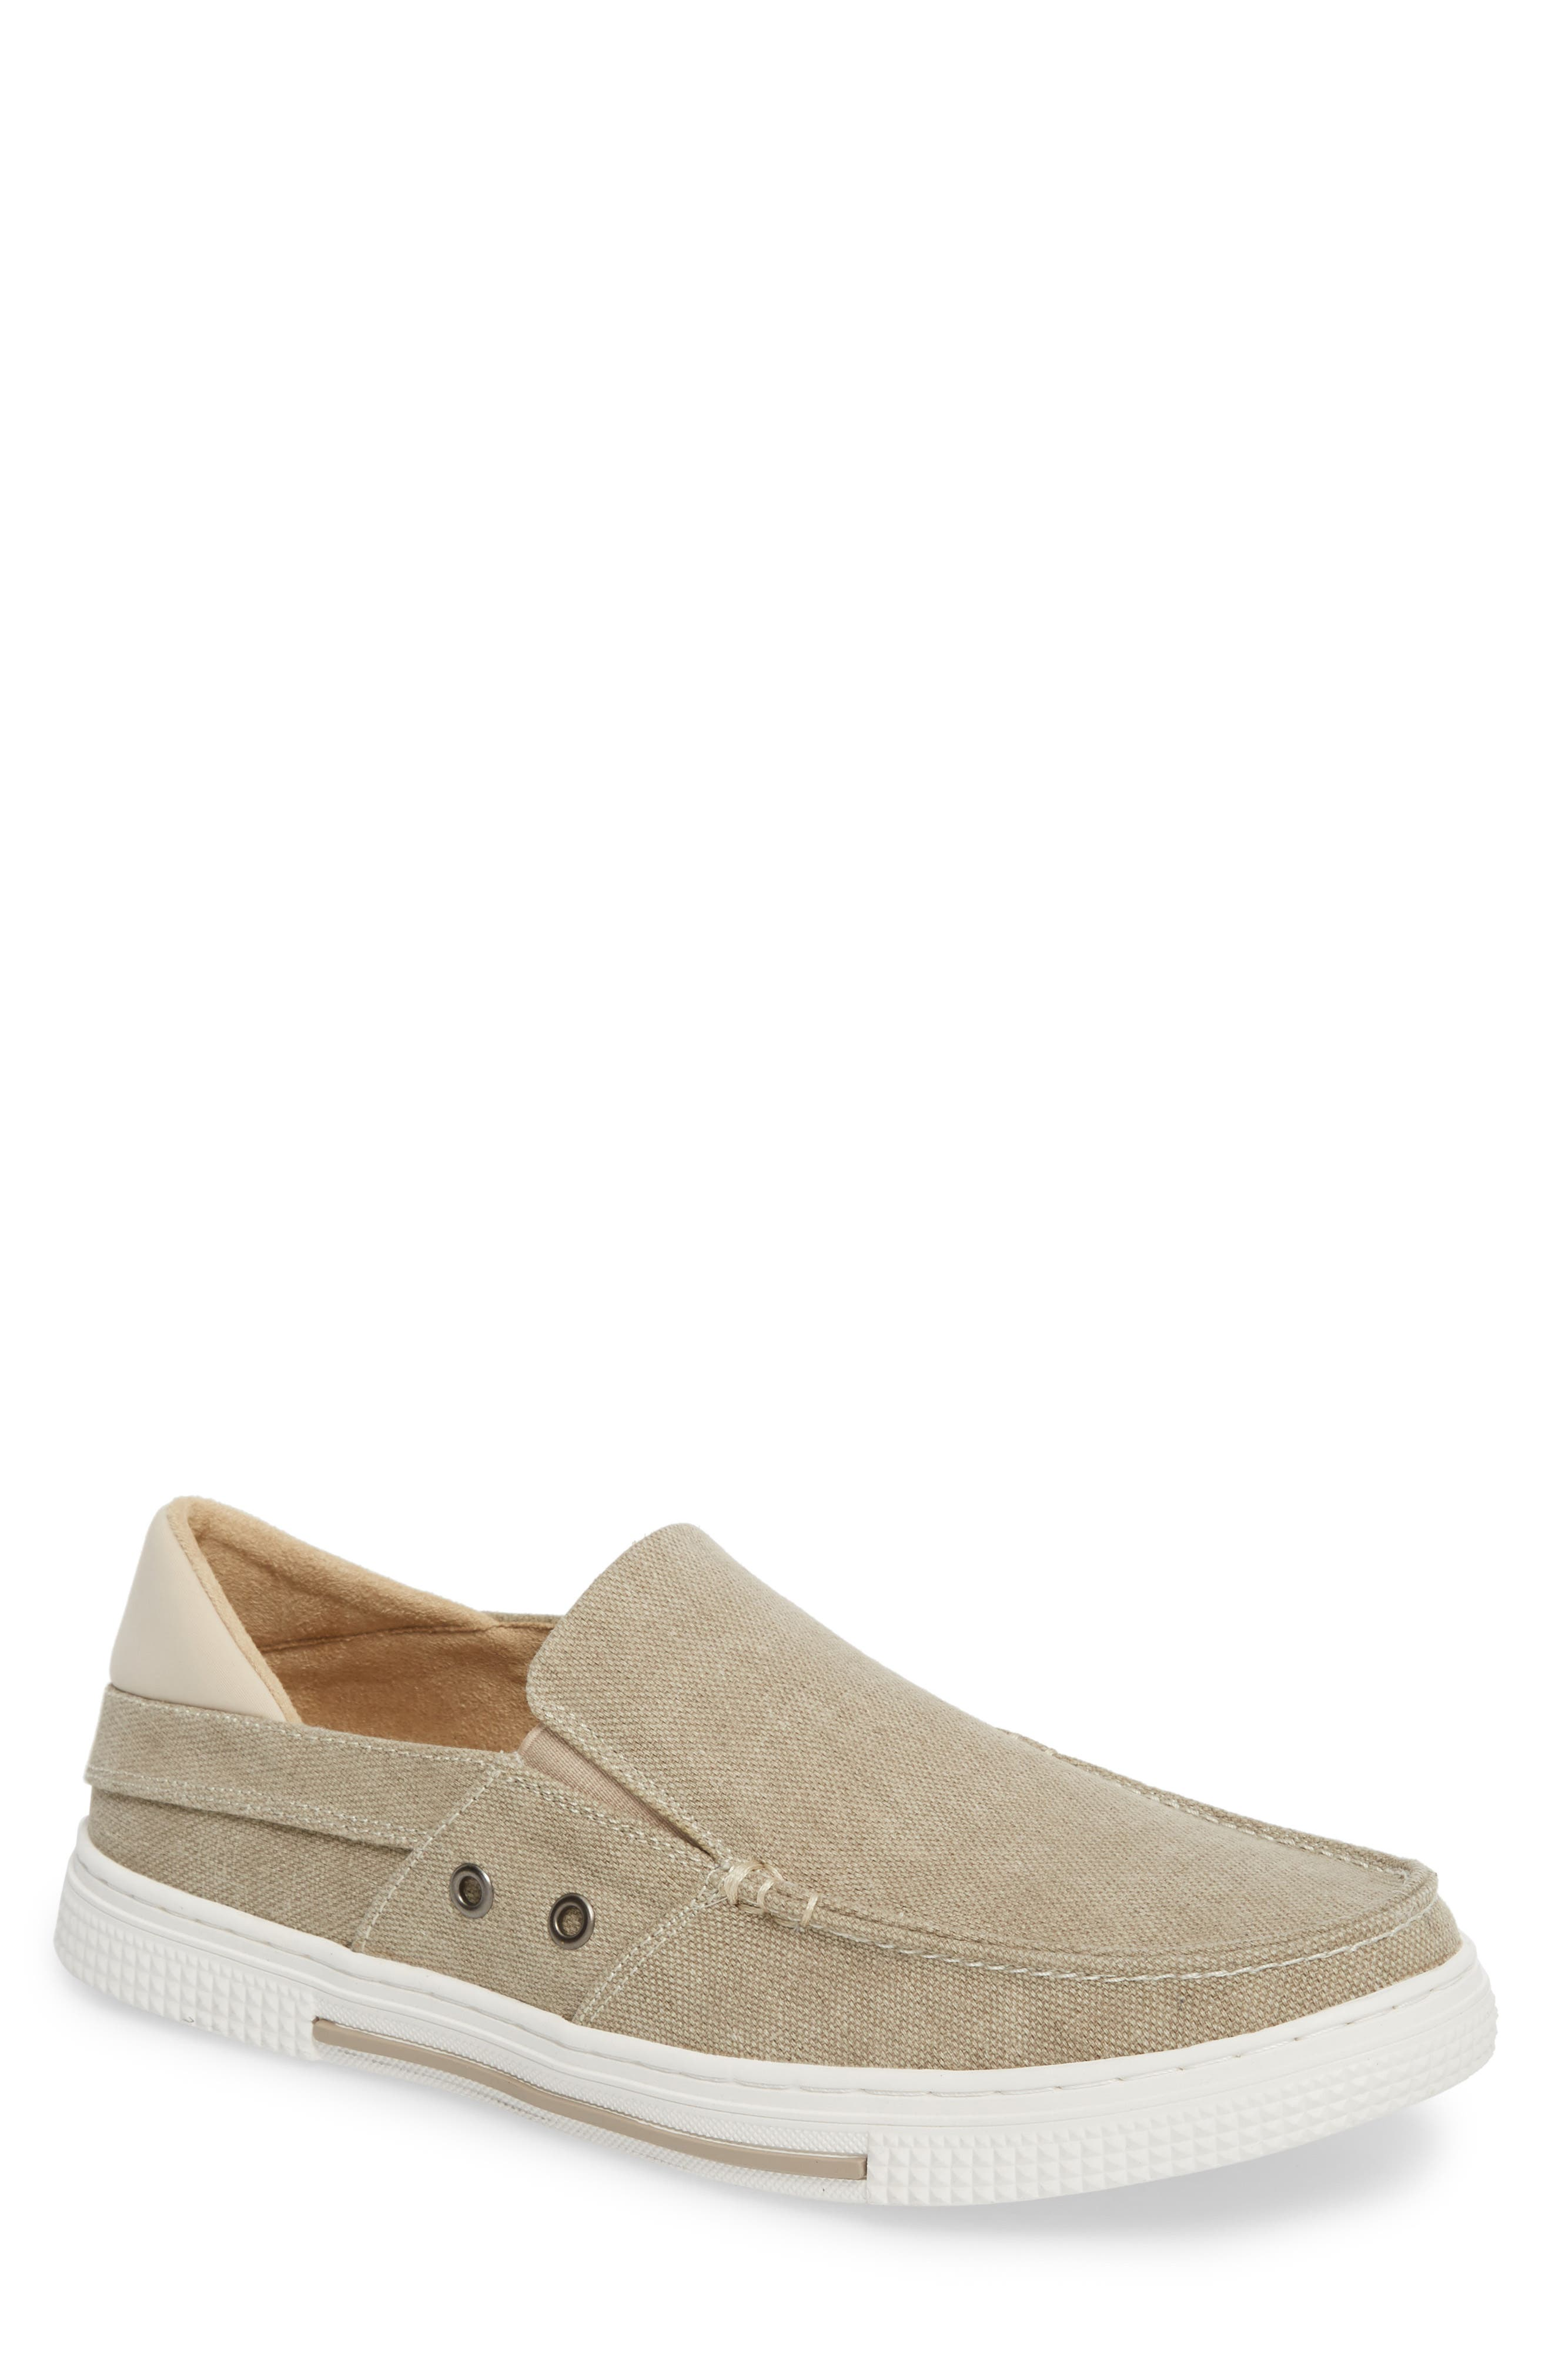 Ankir Boat Slip-On,                         Main,                         color, SAND